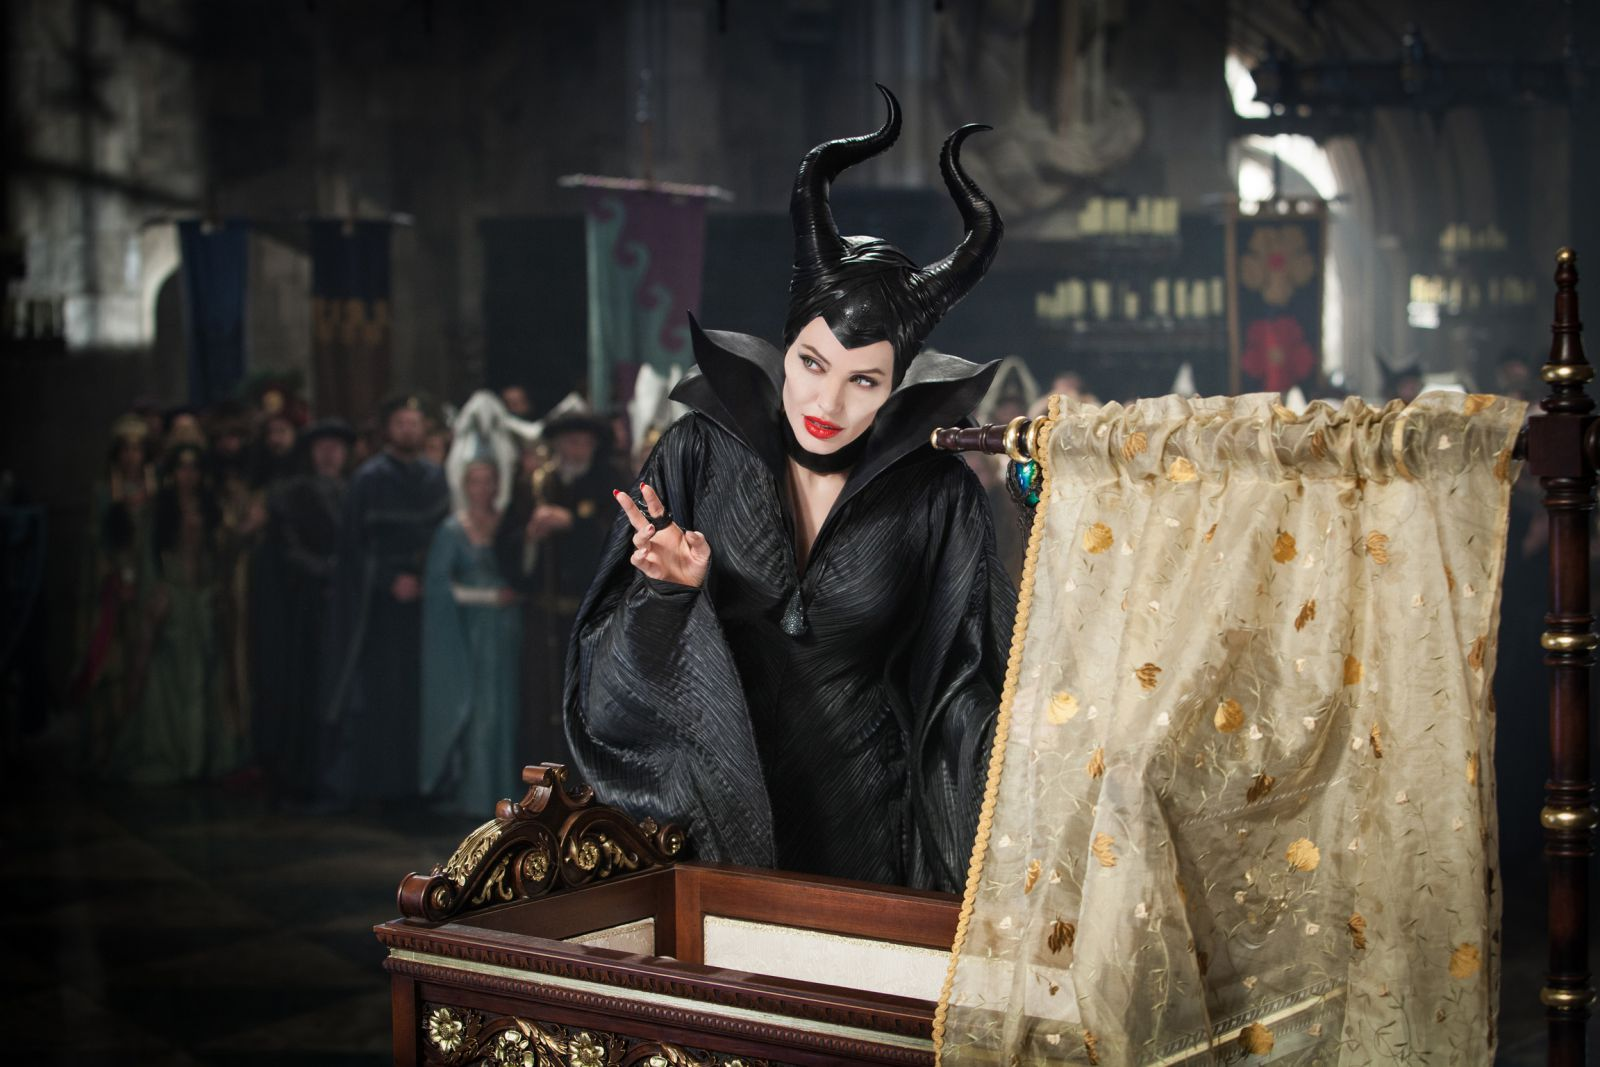 http://www.cinemafia.ru/upload/images/2014-05/537d2b0c9f1b77a8393079d2_maleficent-2.jpg